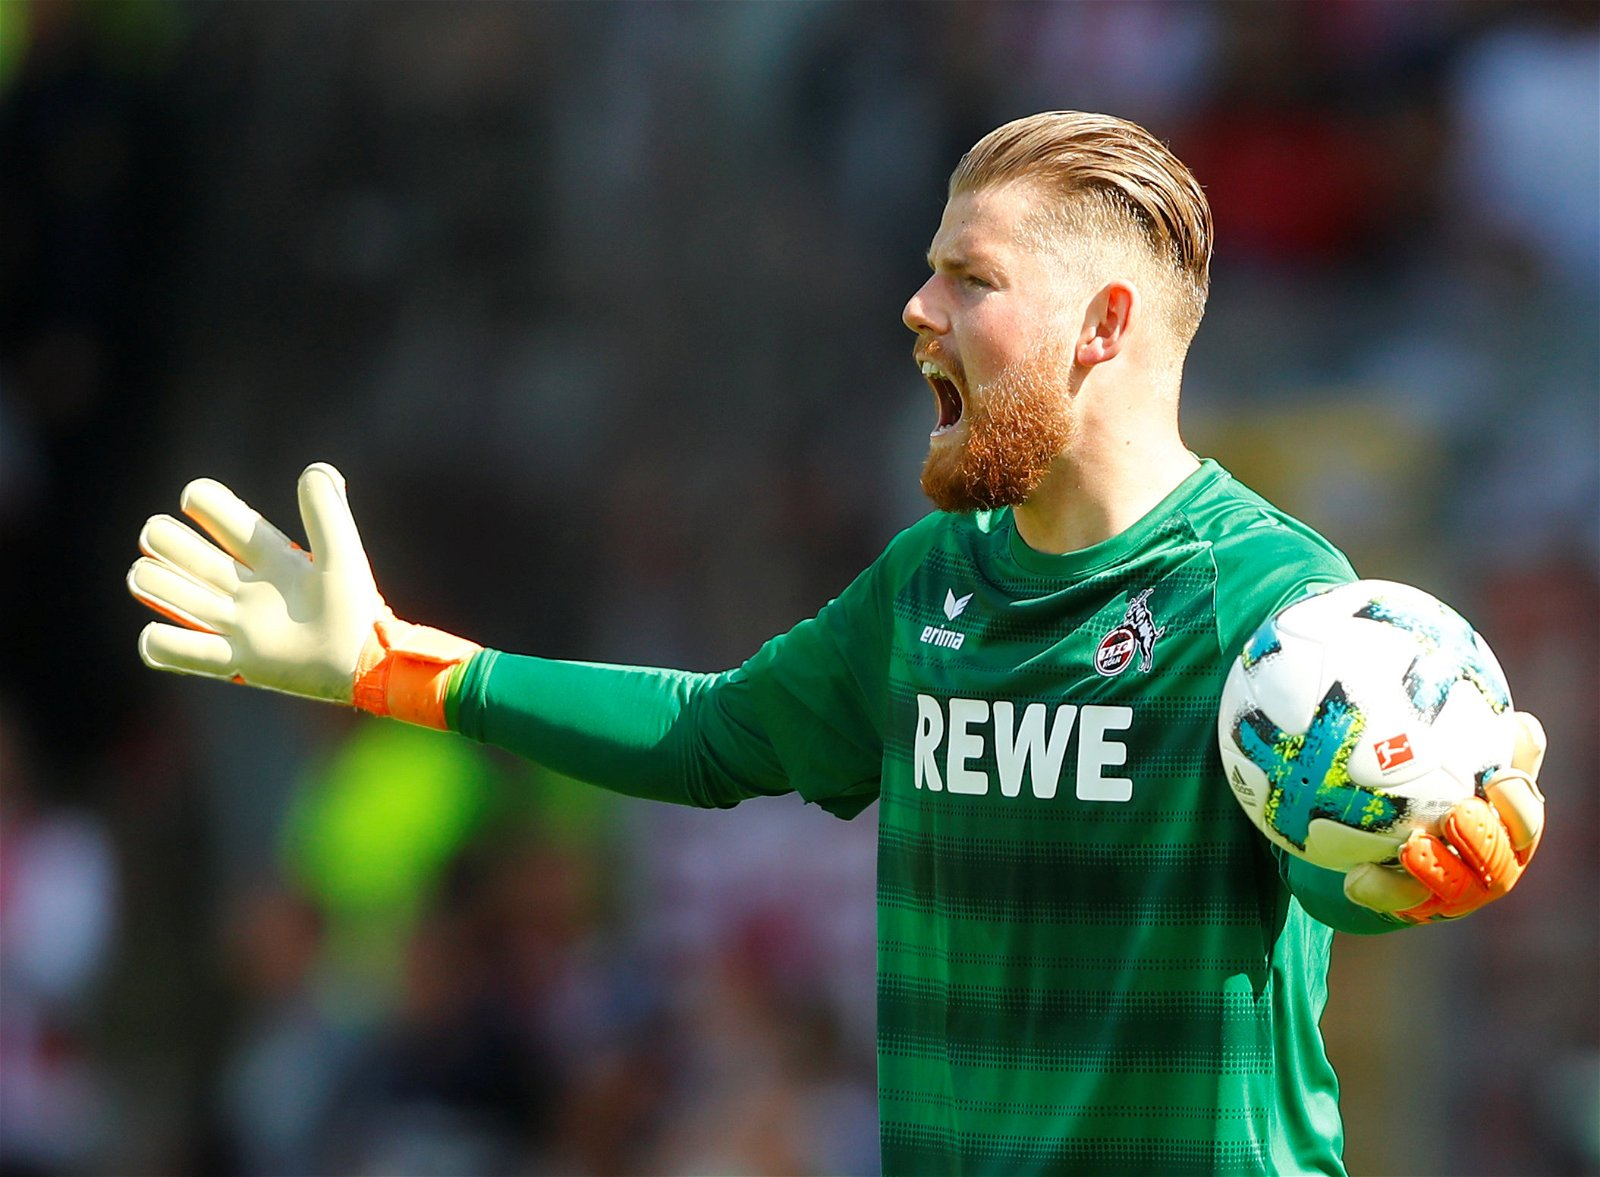 Colognes Timo Horn screams vs Freiburg - La Liga ace, Teenage prospect: Potential solutions to summer exit at Arsenal - opinion